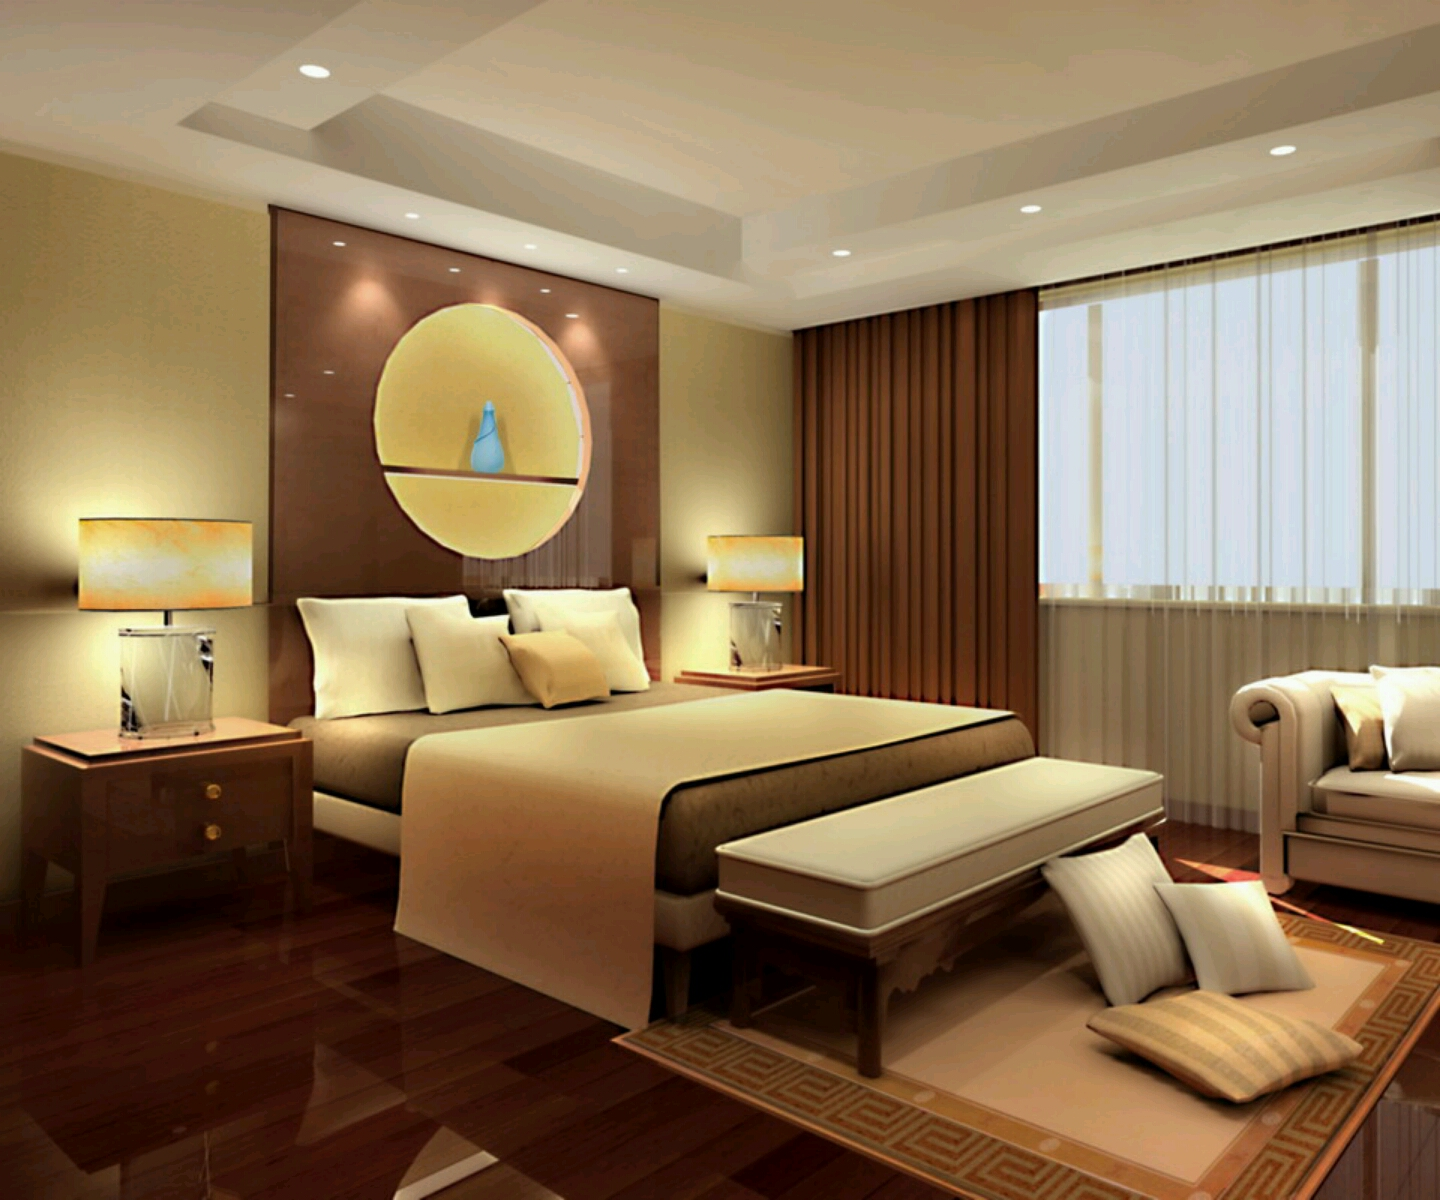 New home designs latest modern beautiful bedrooms for New bedroom design